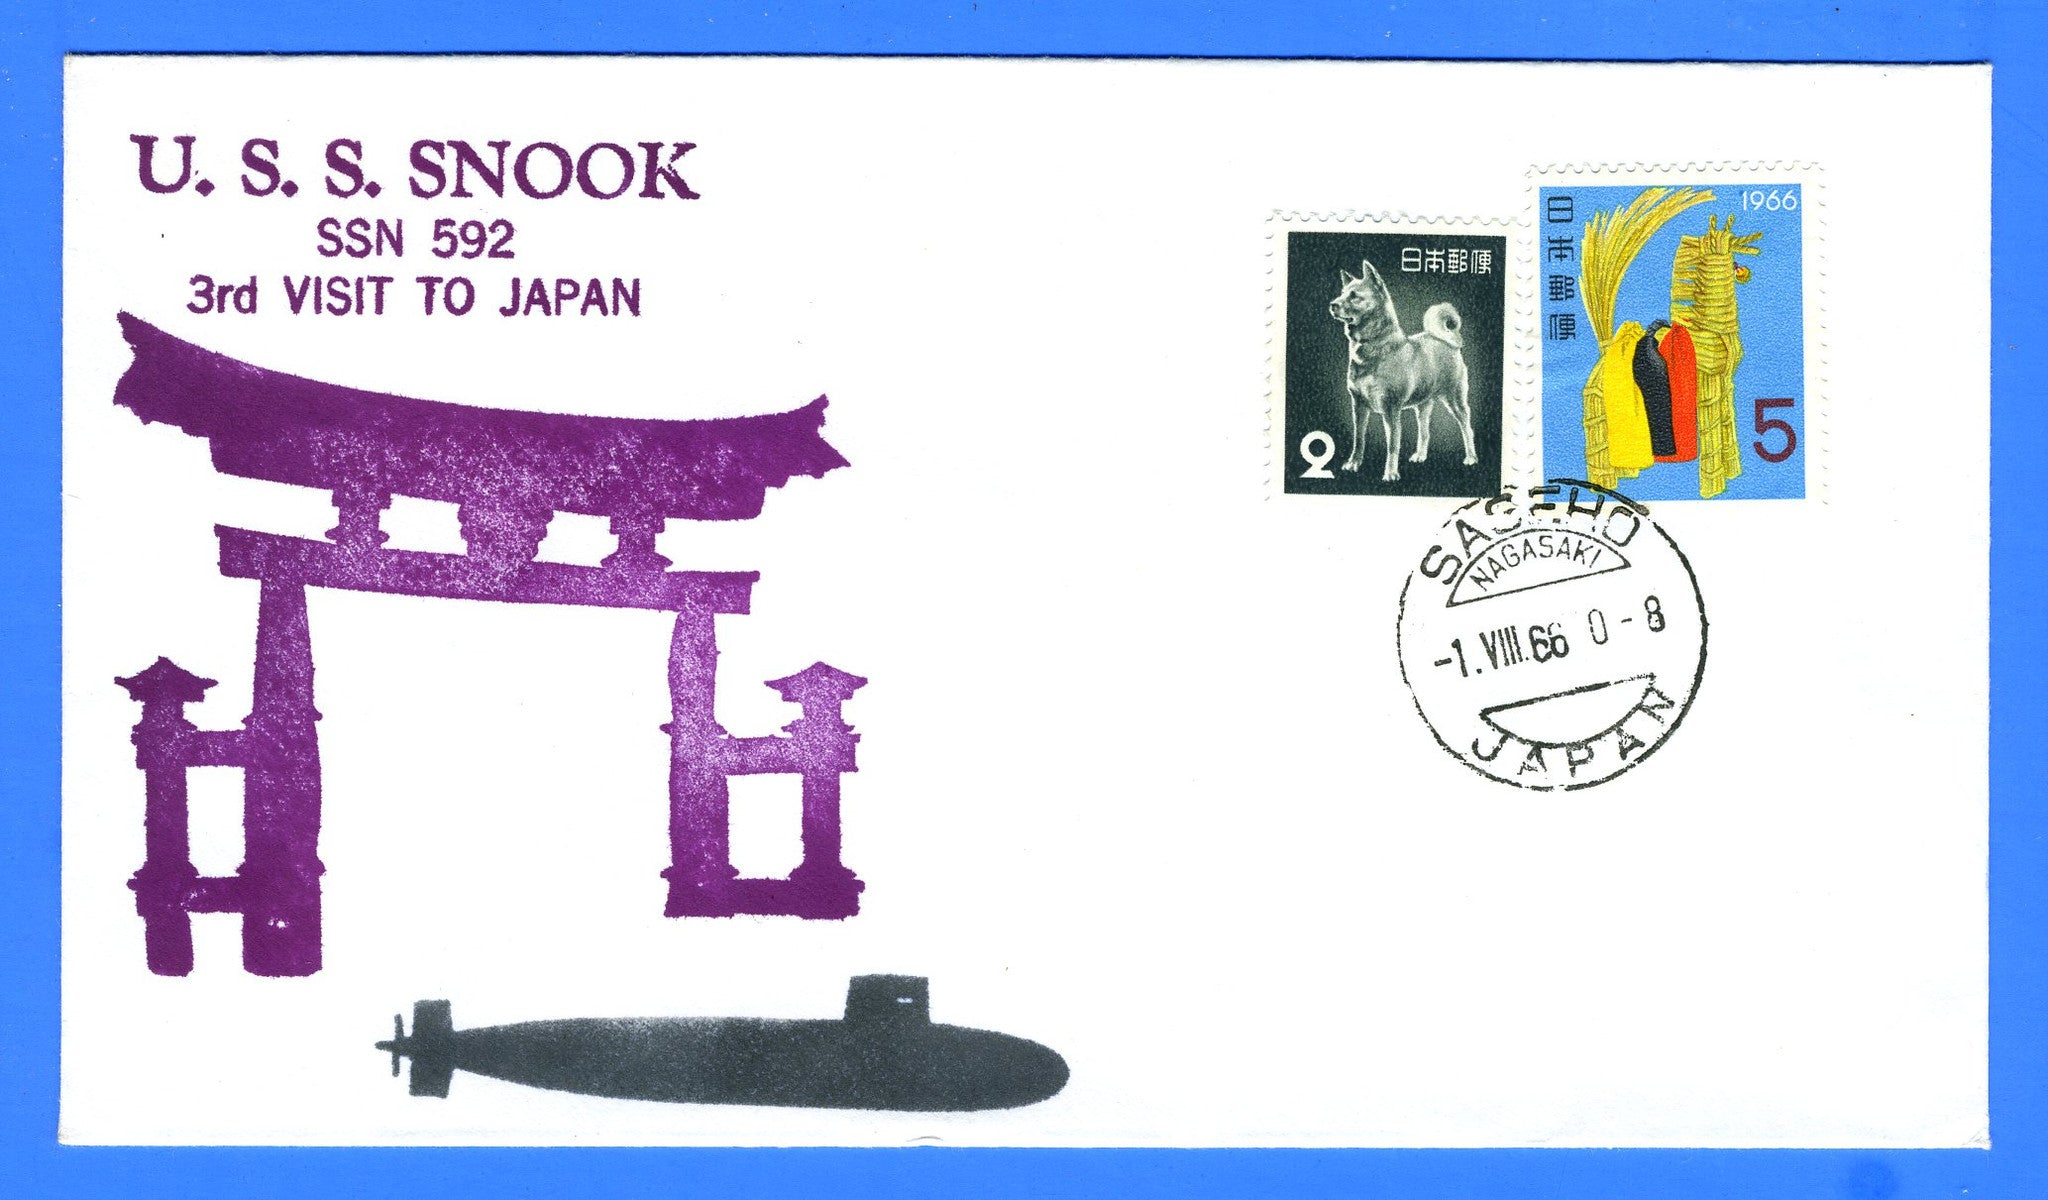 USS Snook SSN-592 3rd Visit to Japan August 1, 1966